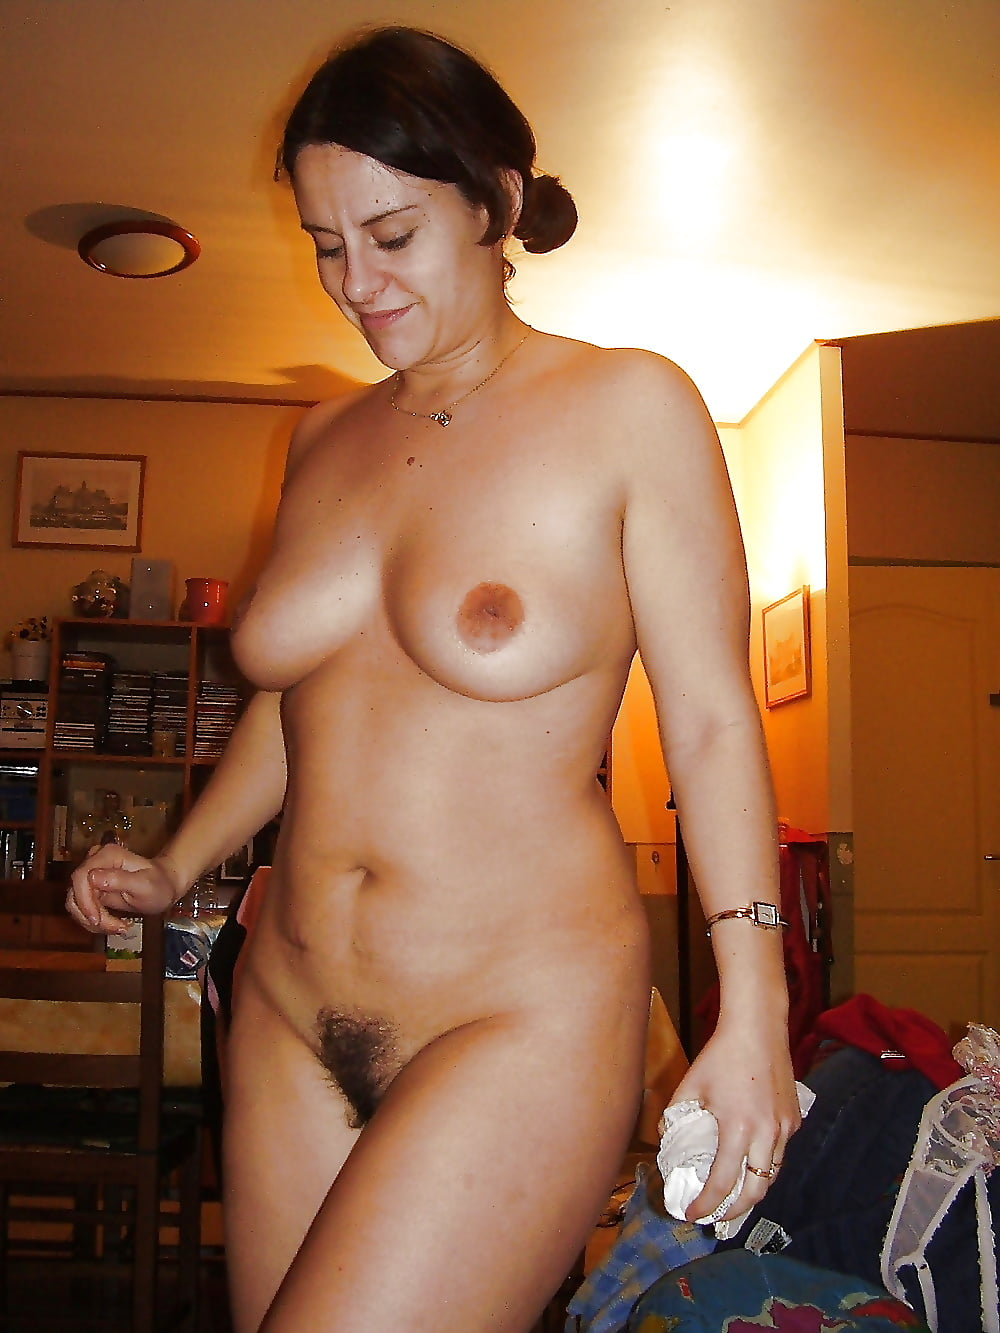 mallores-amateure-nude-woman-real-vrgins